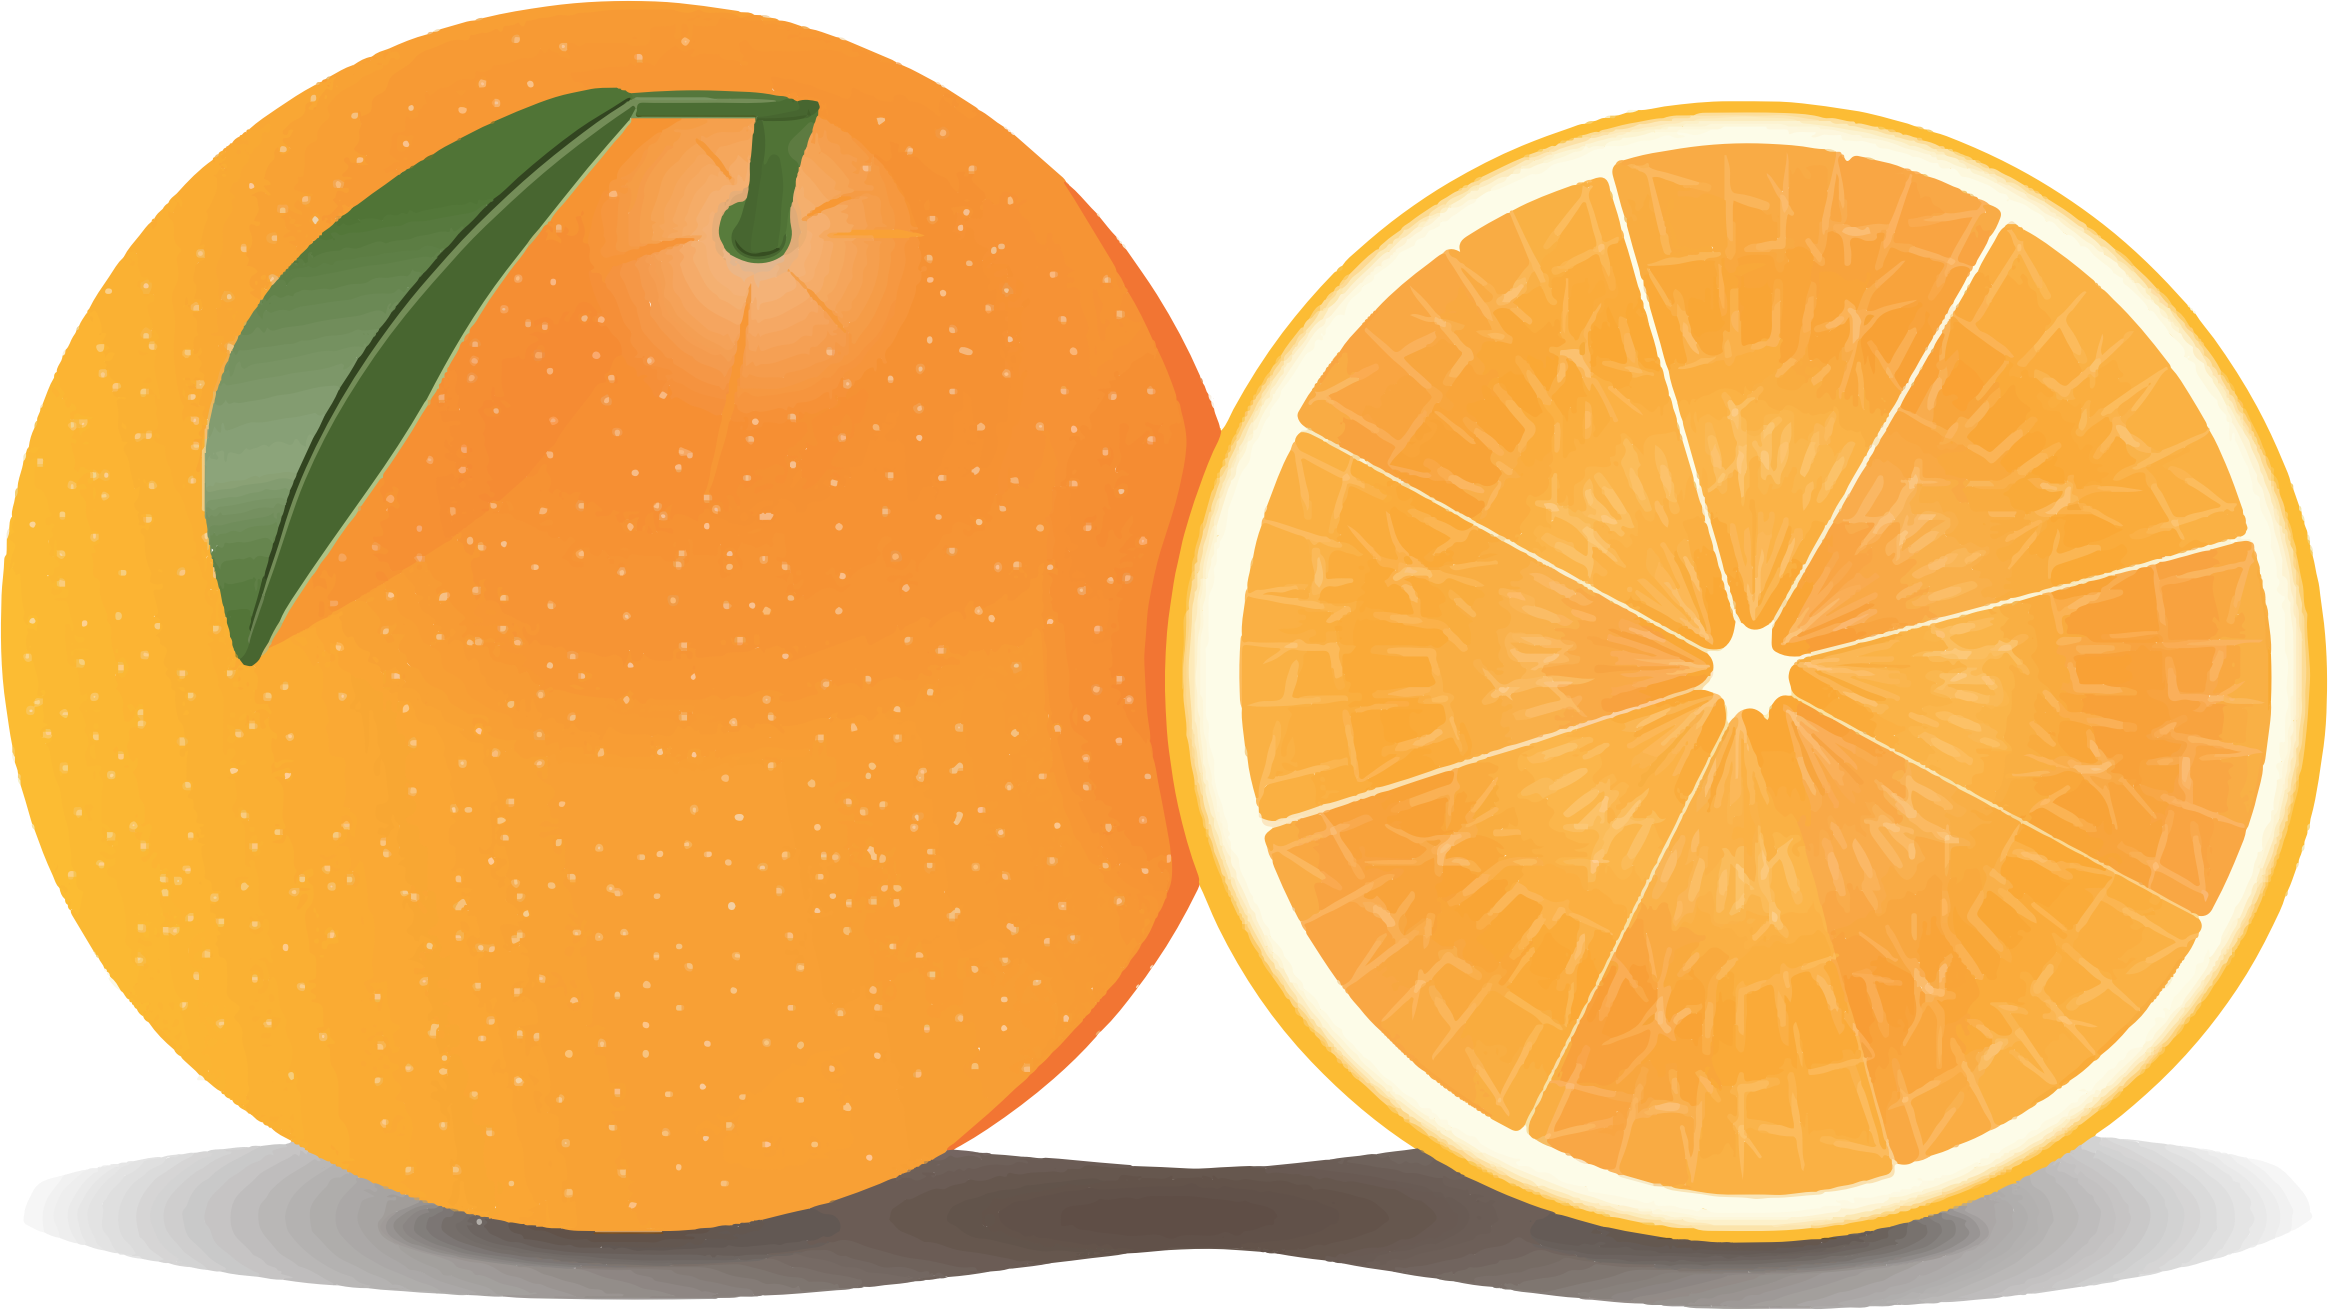 Https Openclipart Org Detail 221257 Orange And A Half